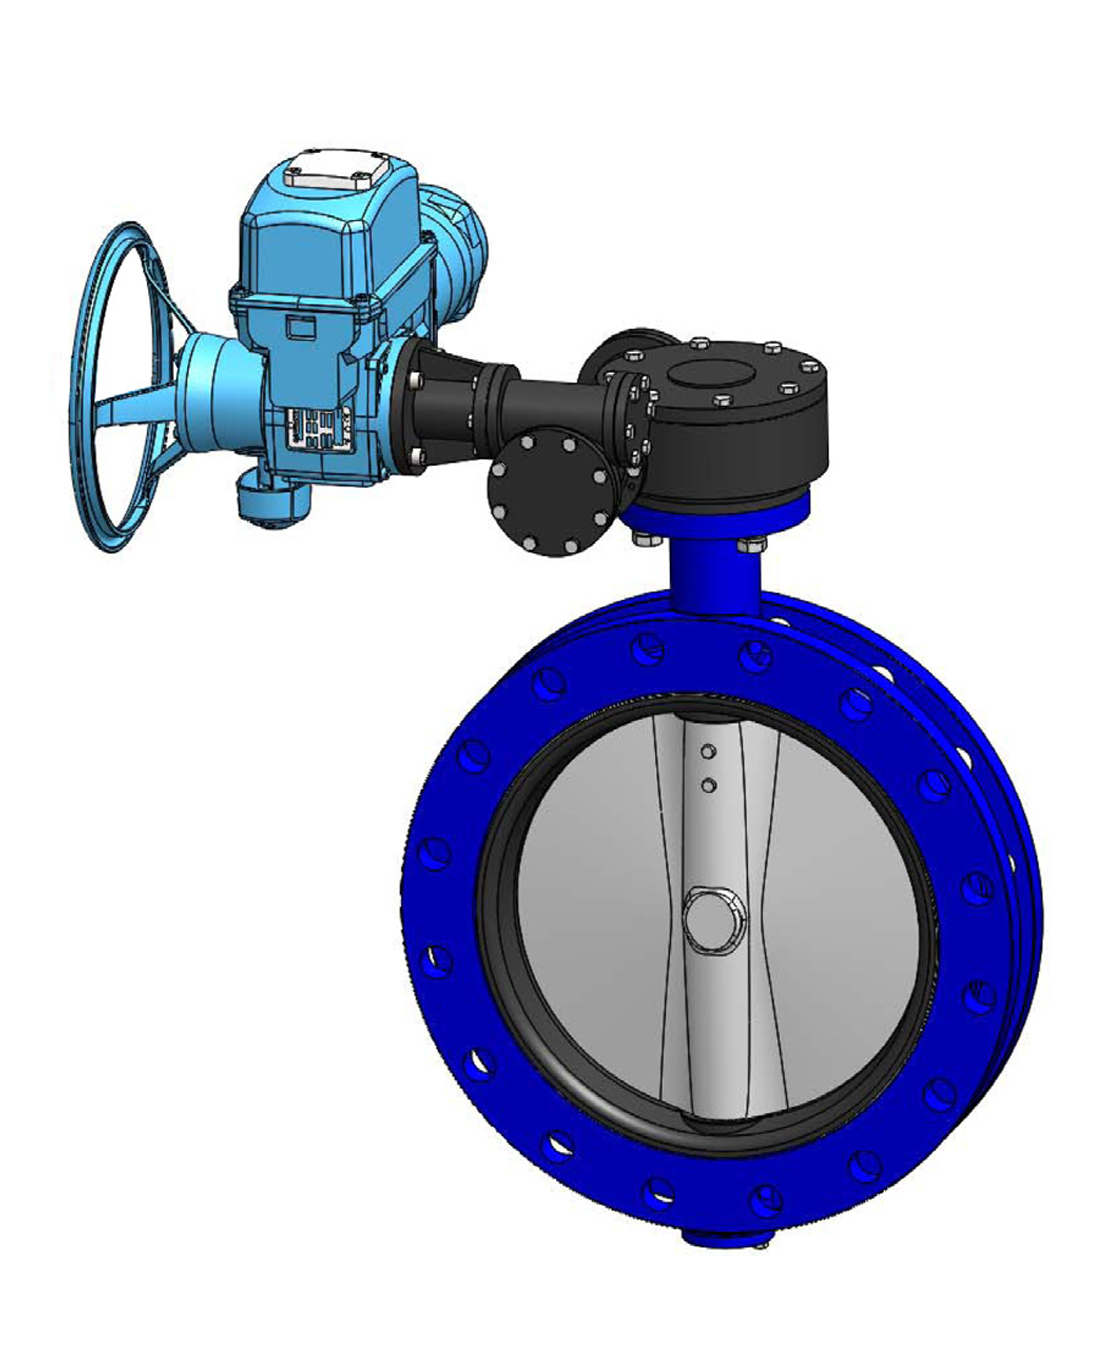 Double flanges type butterfly valve PN16 – ductile iron body – stainless steel disc – BERNARD electric operator